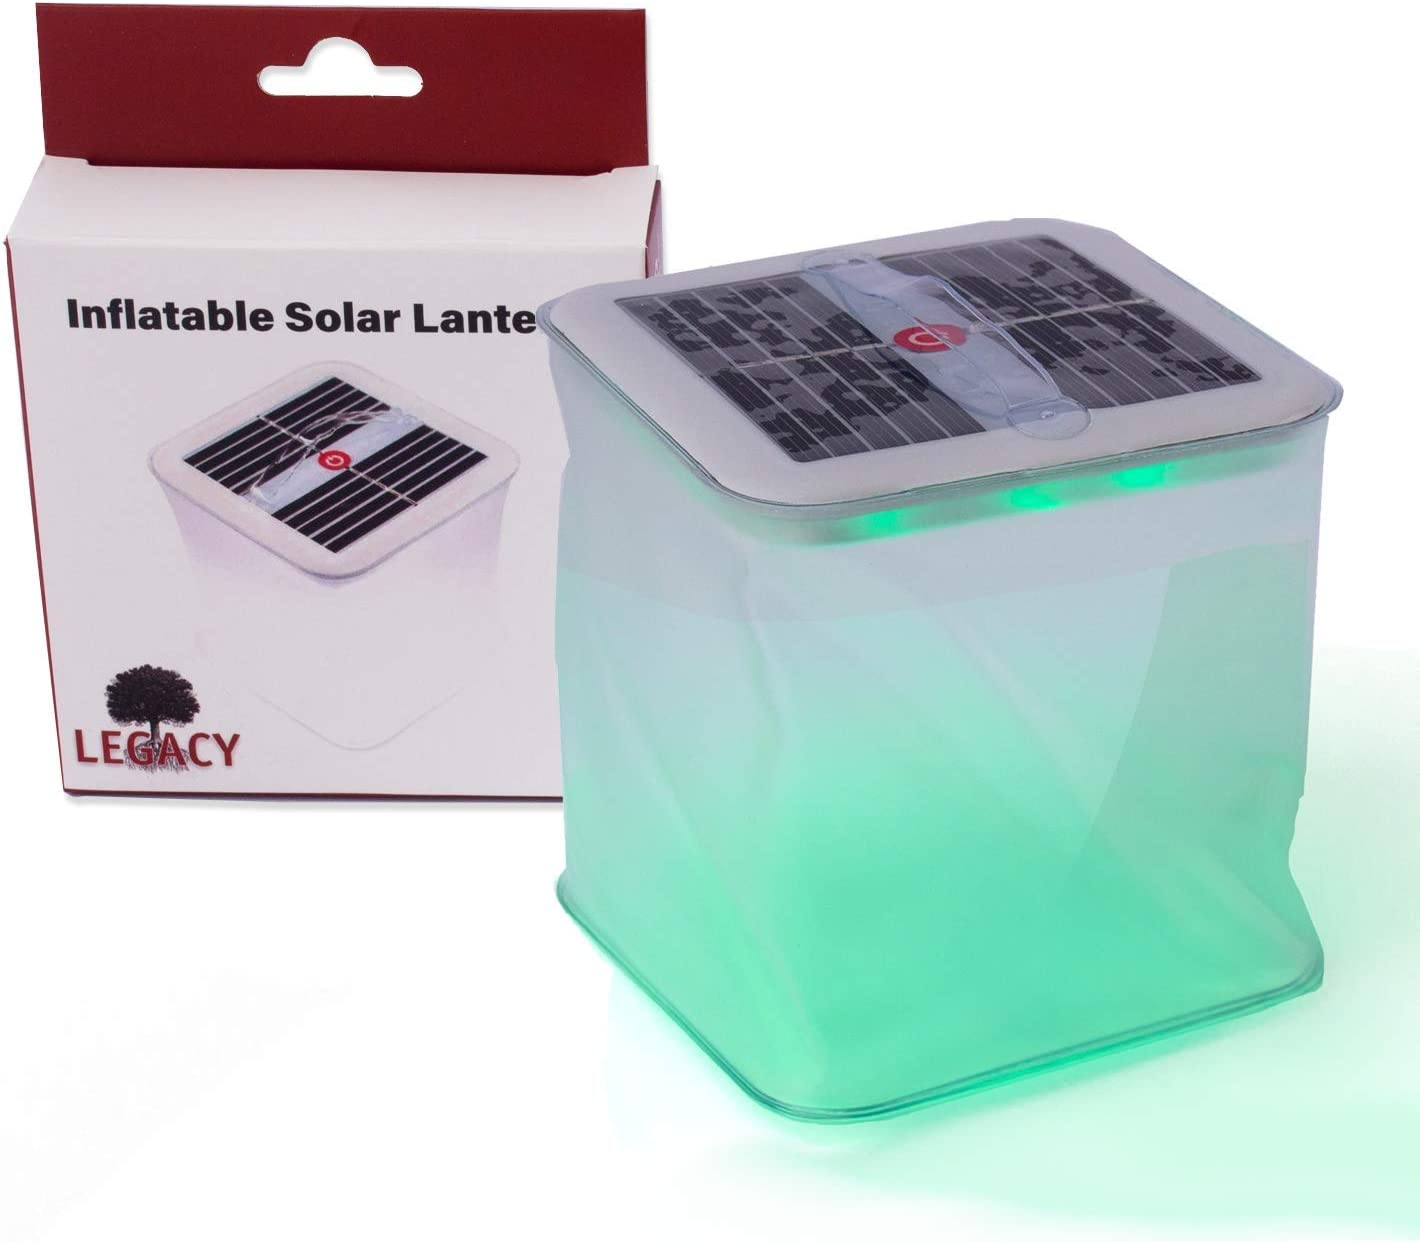 Legacy Premium Food Storage Multicolor Solar Powered Inflatable LED Lantern - Portable, Compact, Fun - Decorative, Floating Pool & Party Lights - Up to 90 Lumens - 8 Hour Charge Night Light